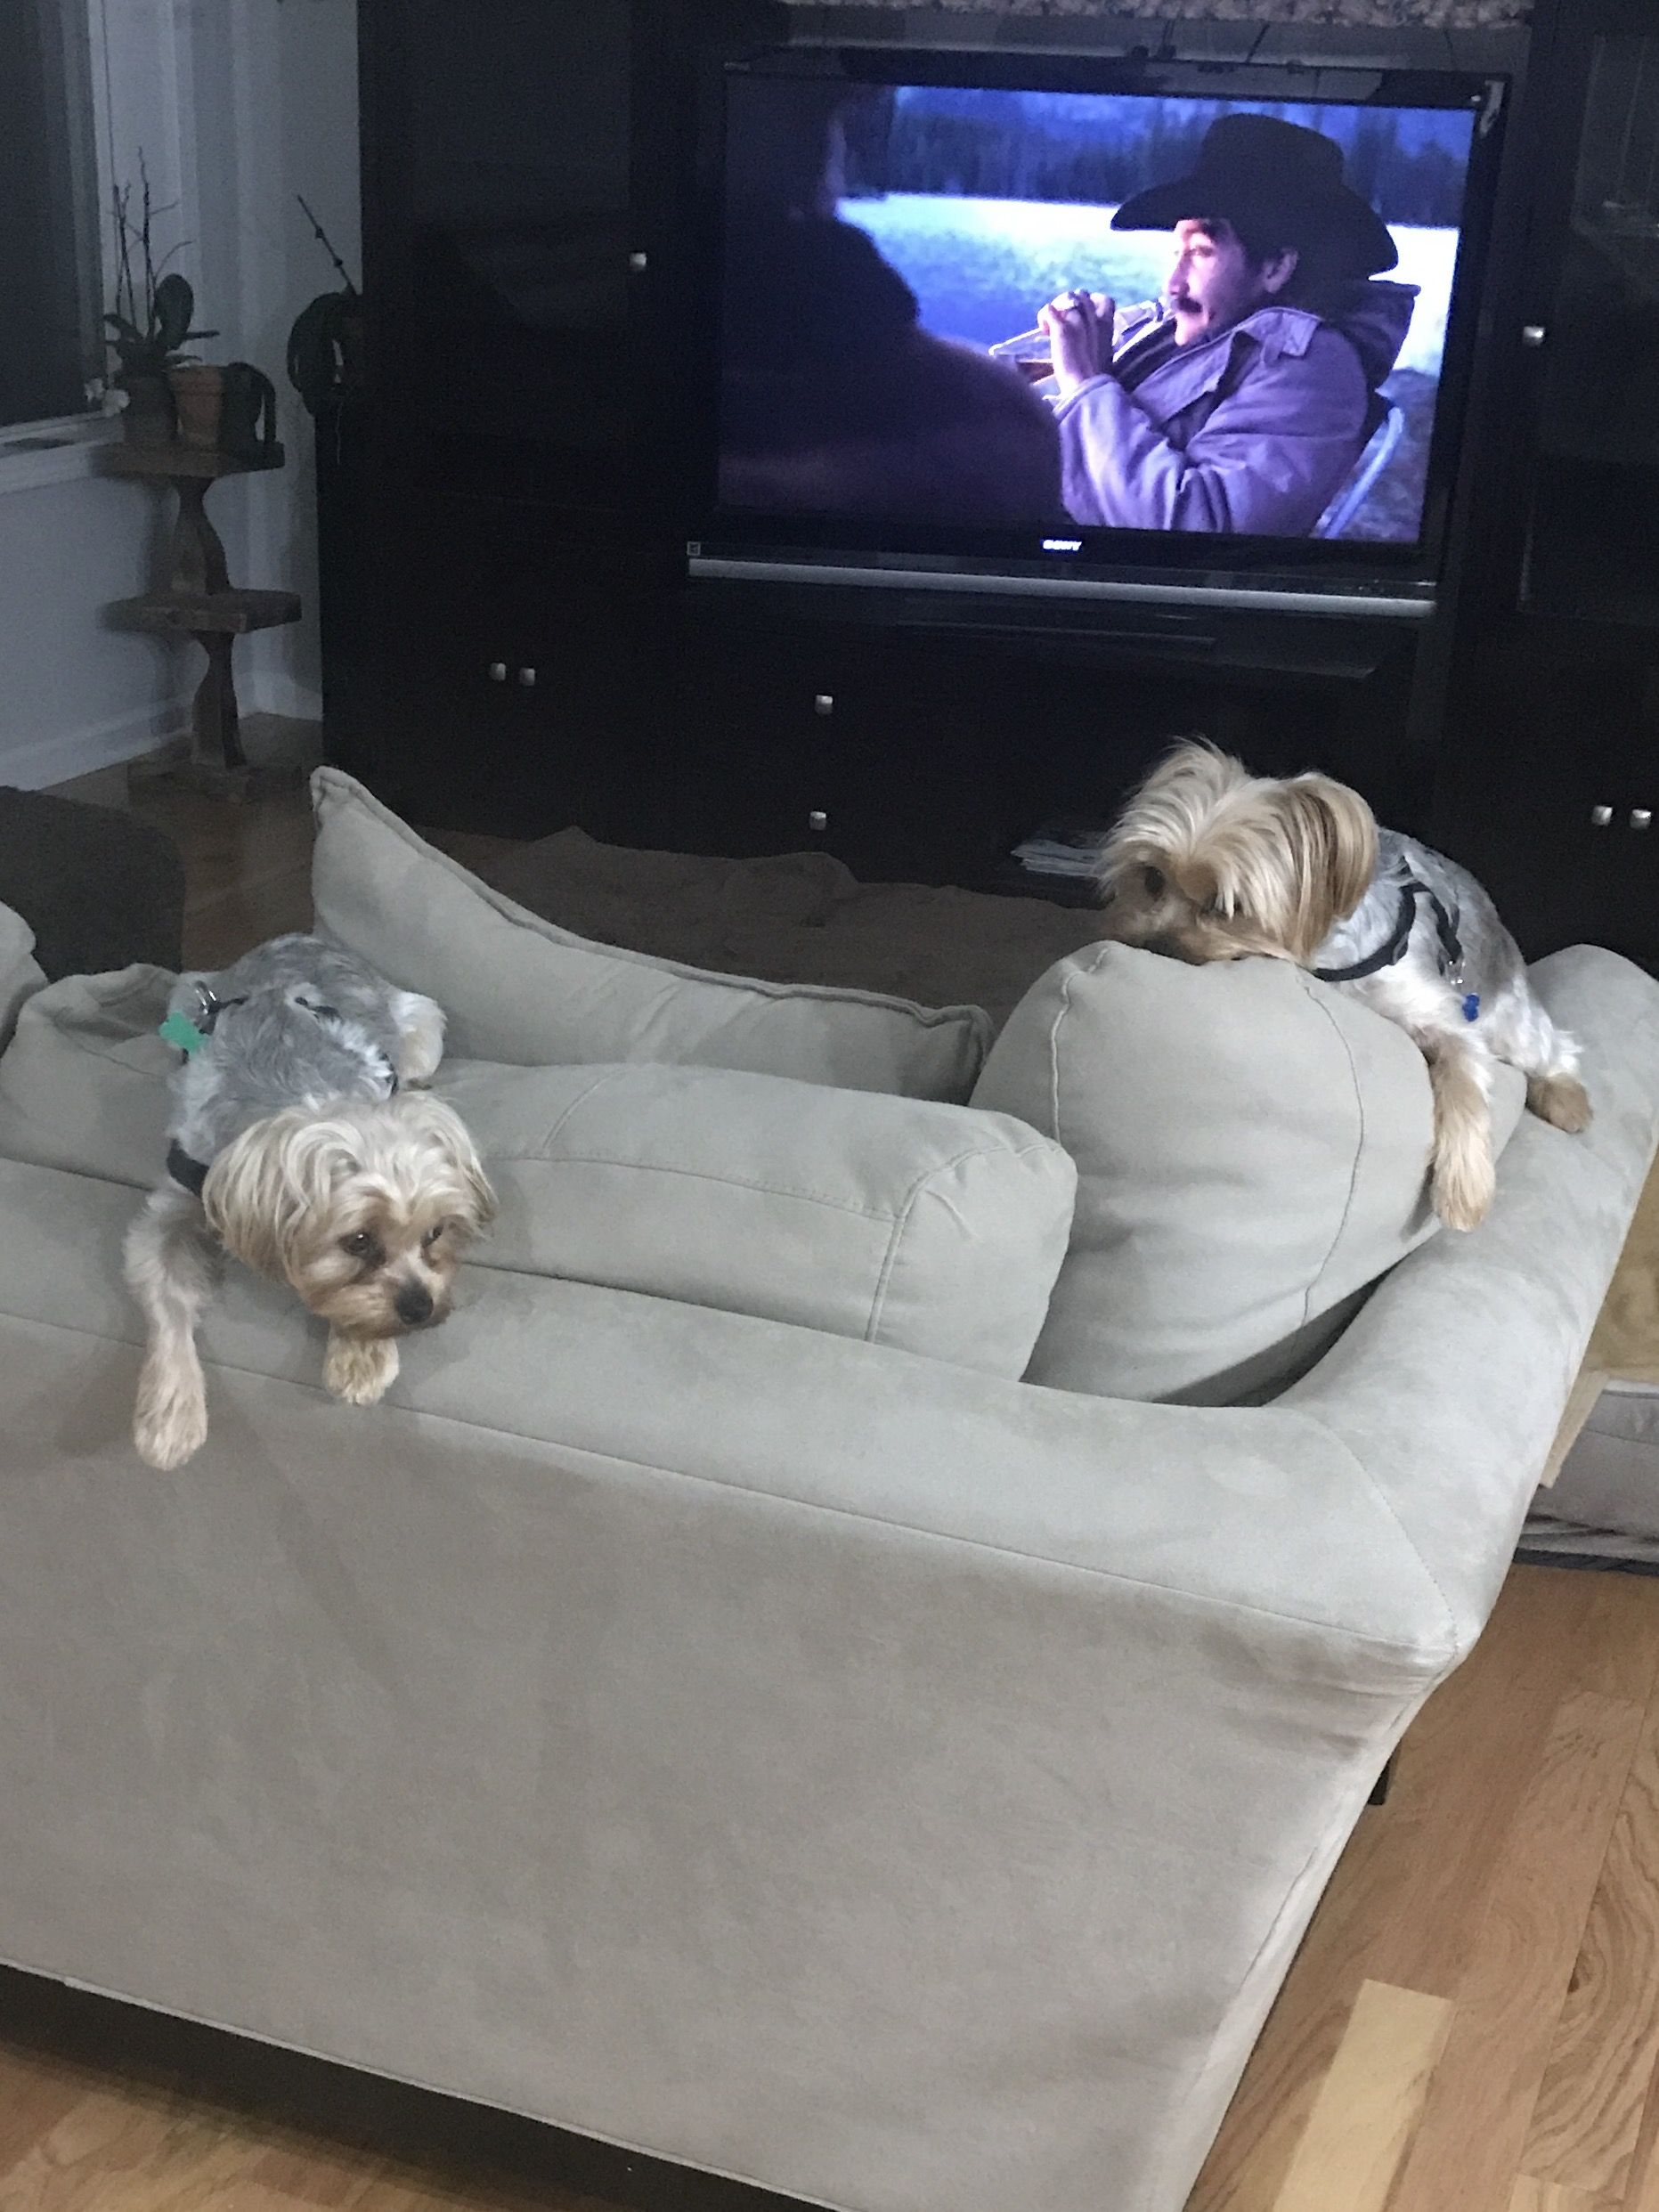 ==>Please meet John's Rascal and Munchkin  Late at night waiting to go to bed. The couch will do for now!   Original Post at https://itsayorkielife.com/johns-rascal-and-munchkin-2/  Share your your sweetheart at http://bit.ly/itsayorkielife}  #Yorkies,#YorkshireTerriers,#YorkshireTerrierLove,#ItsaYorkieLife